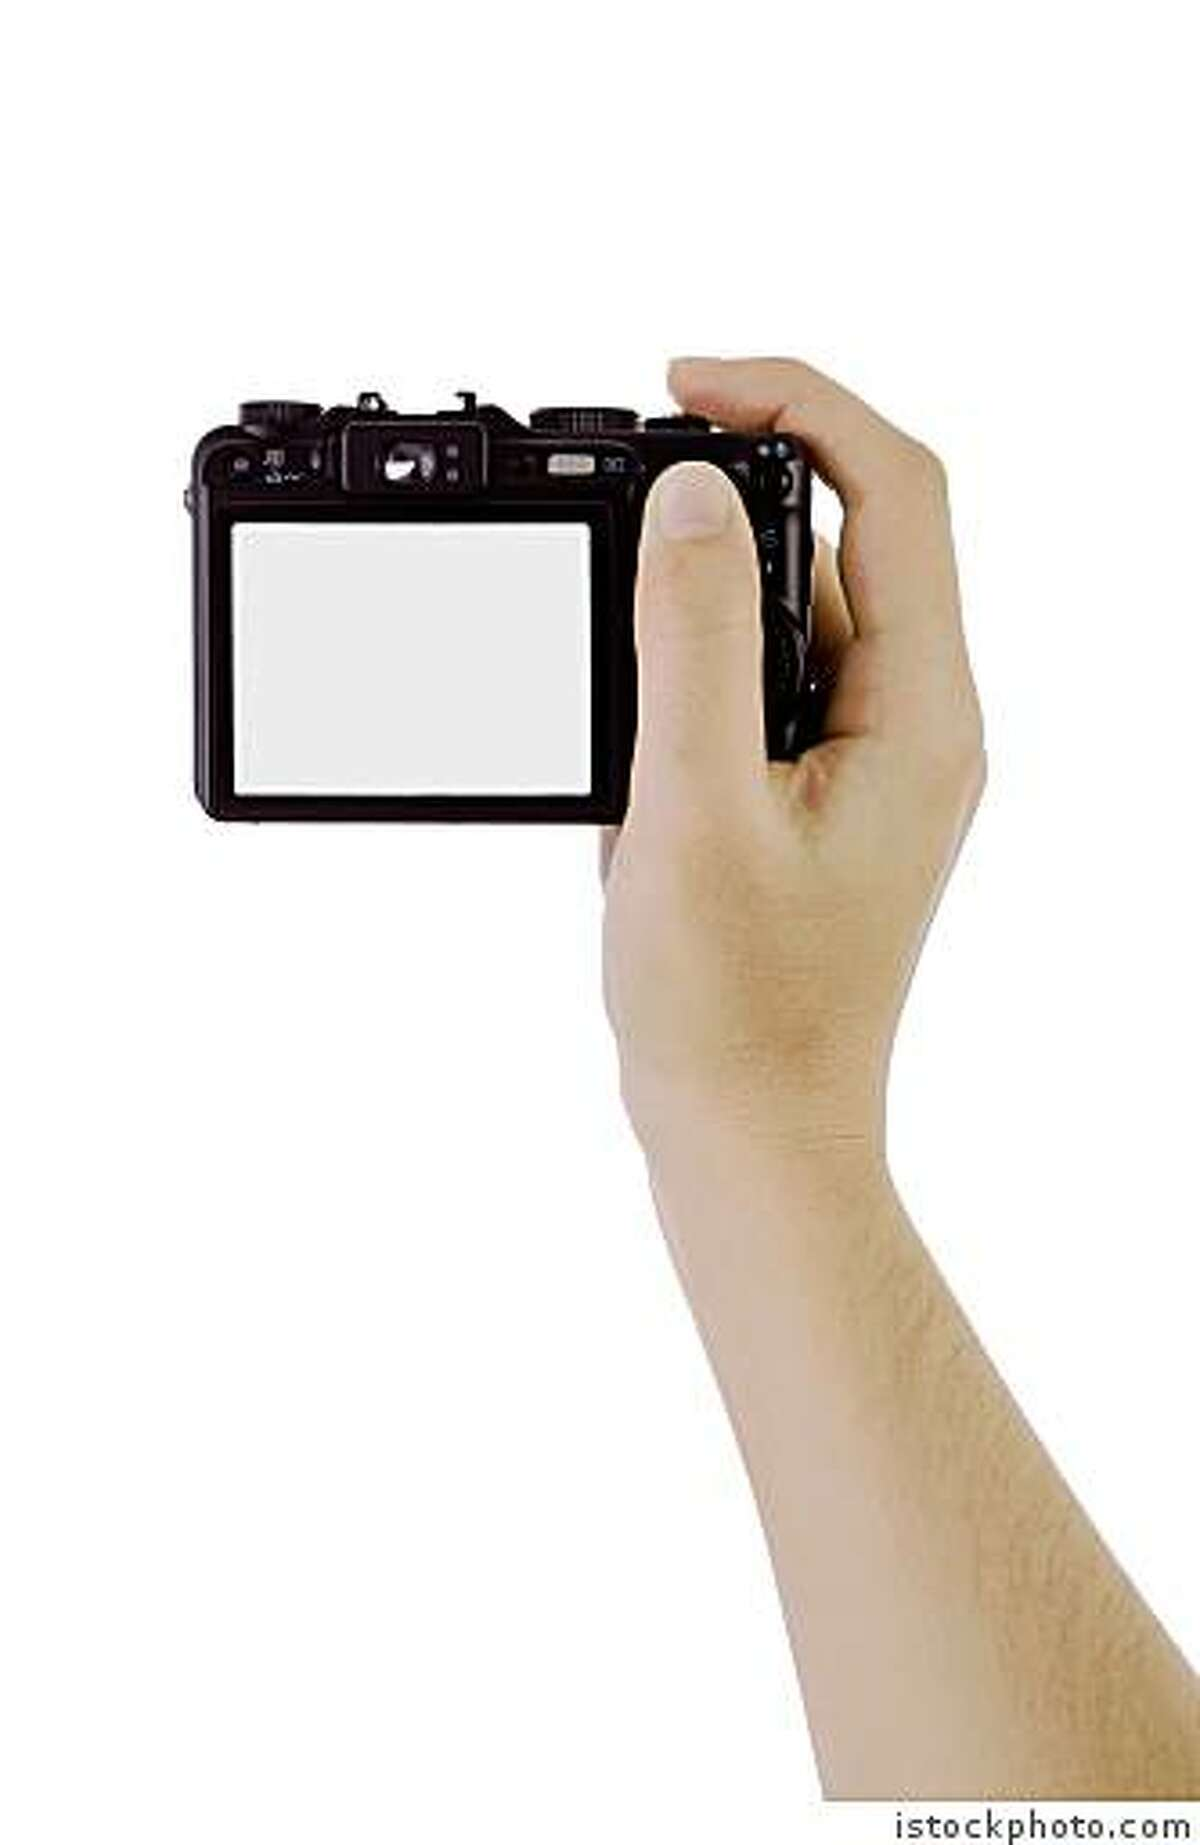 arm holding a digital cameraHand photographic with a digital camera isolated on white